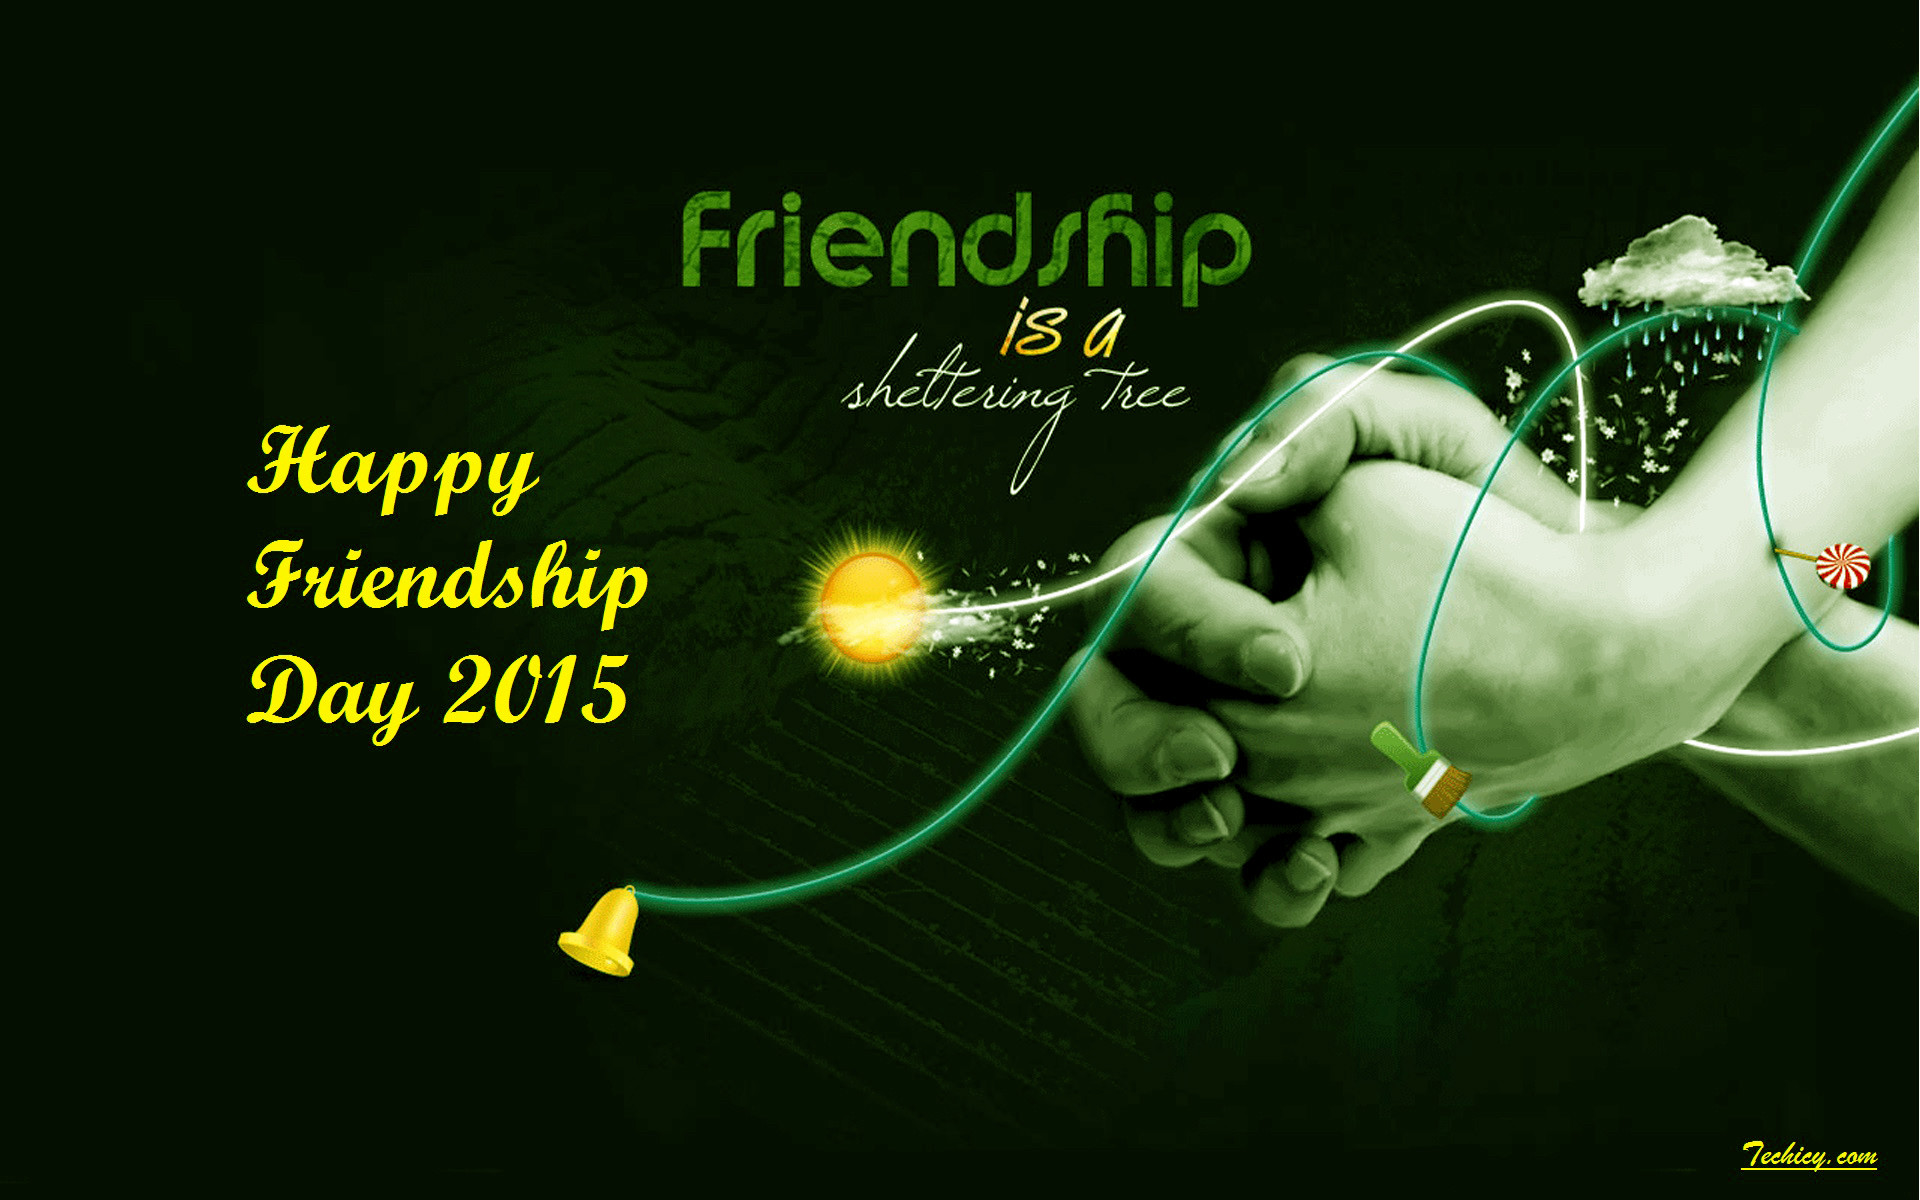 Friendship wallpaper 84 images 1920x1080 friendship day wallpapers altavistaventures Image collections